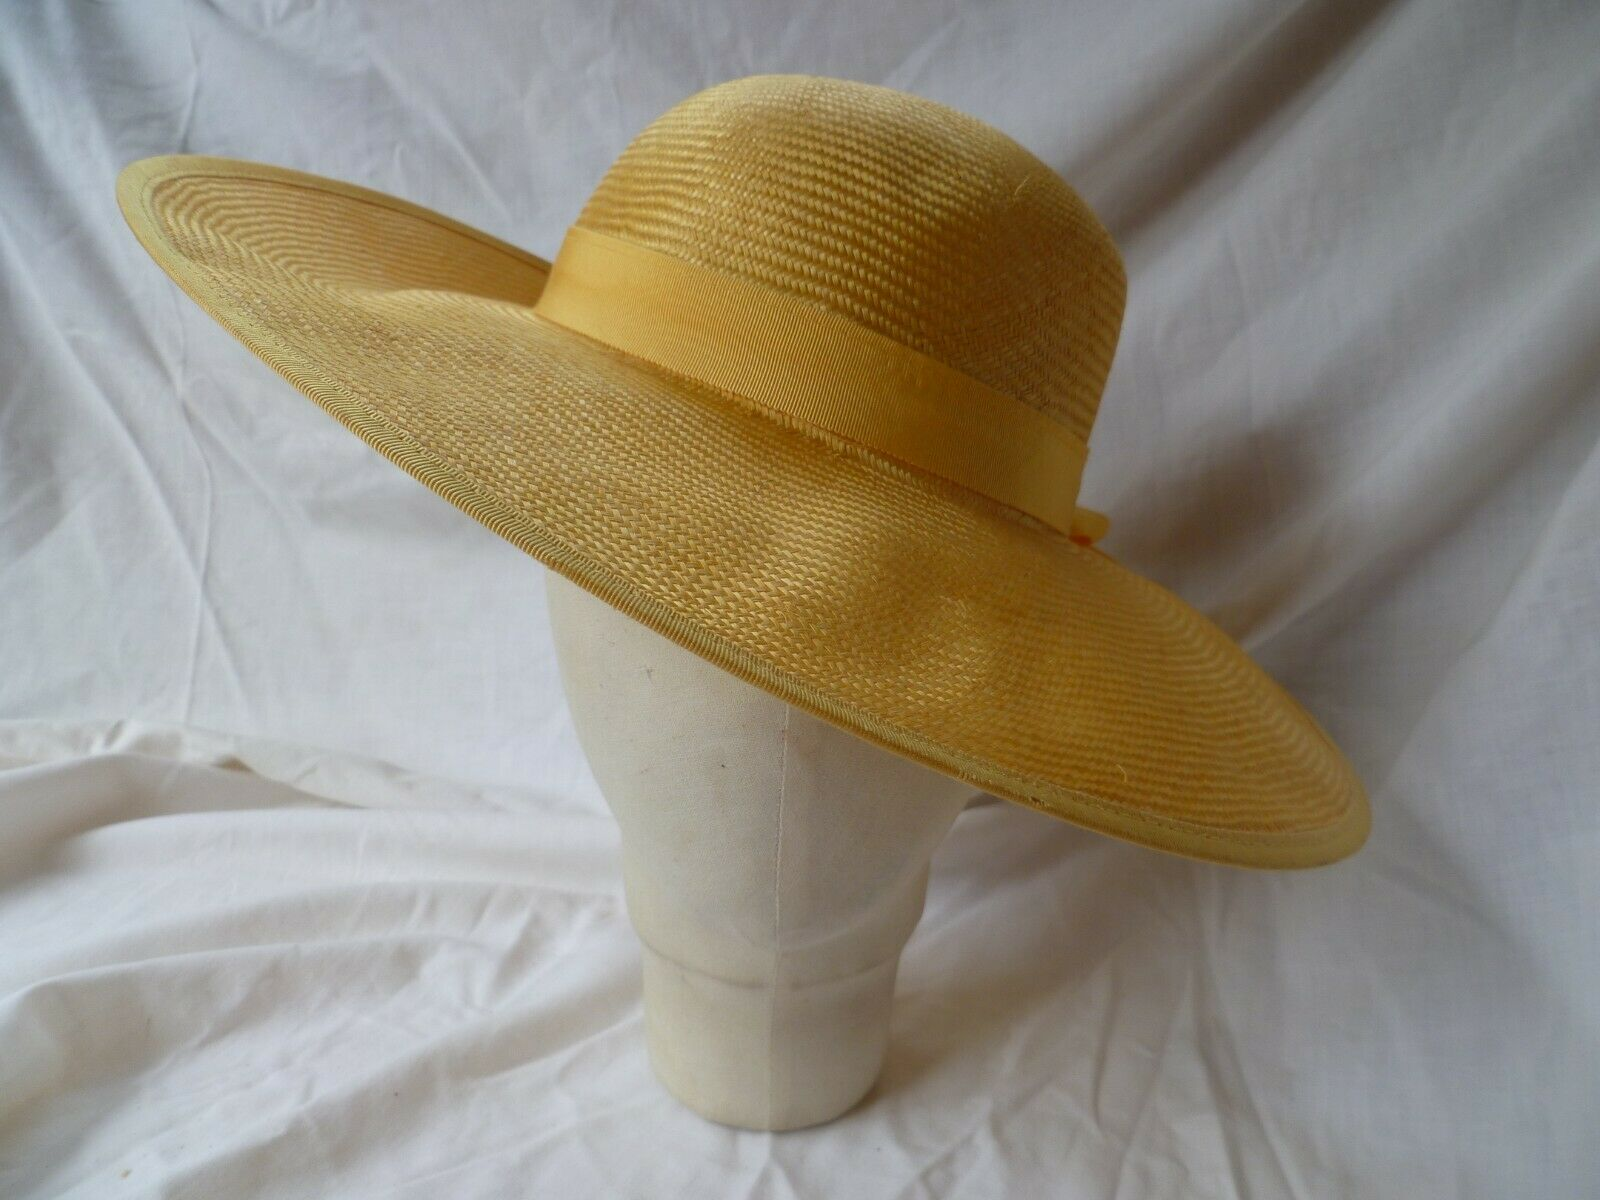 'Jacques Vert' Yellow Sisal Straw Hat with Pink Flower Detail 56cms